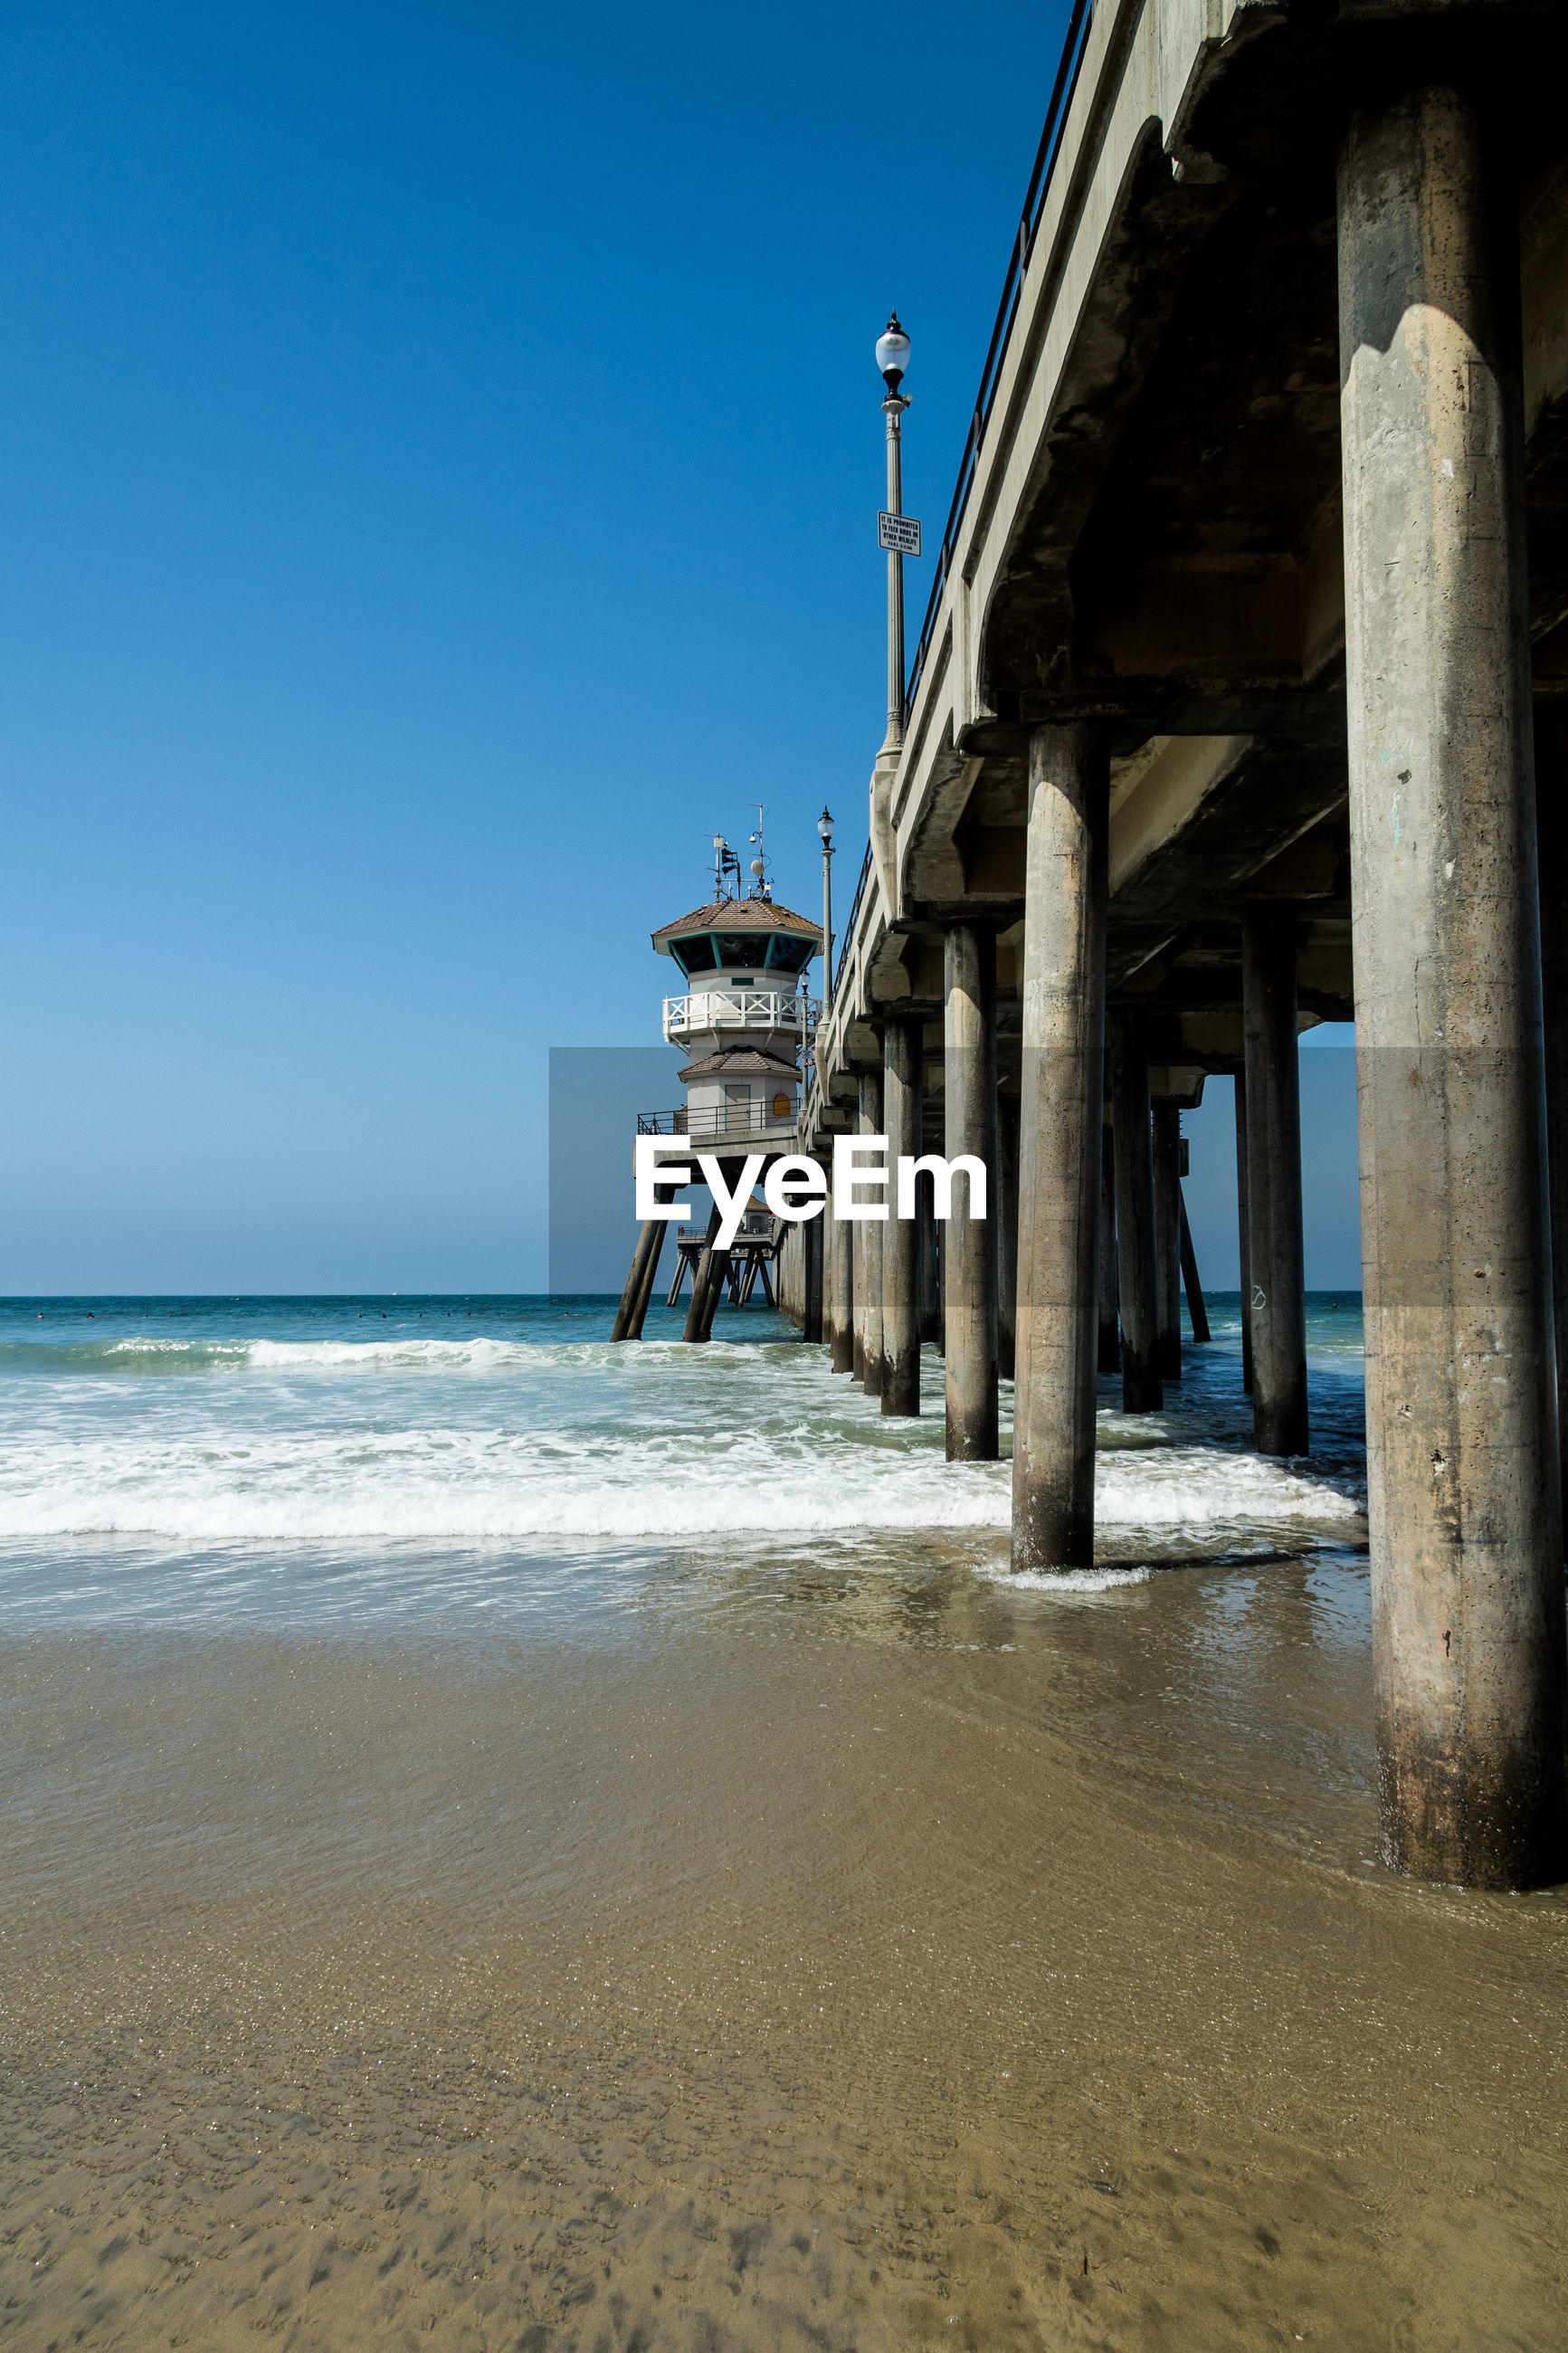 VIEW OF PIER ON BEACH AGAINST CLEAR SKY